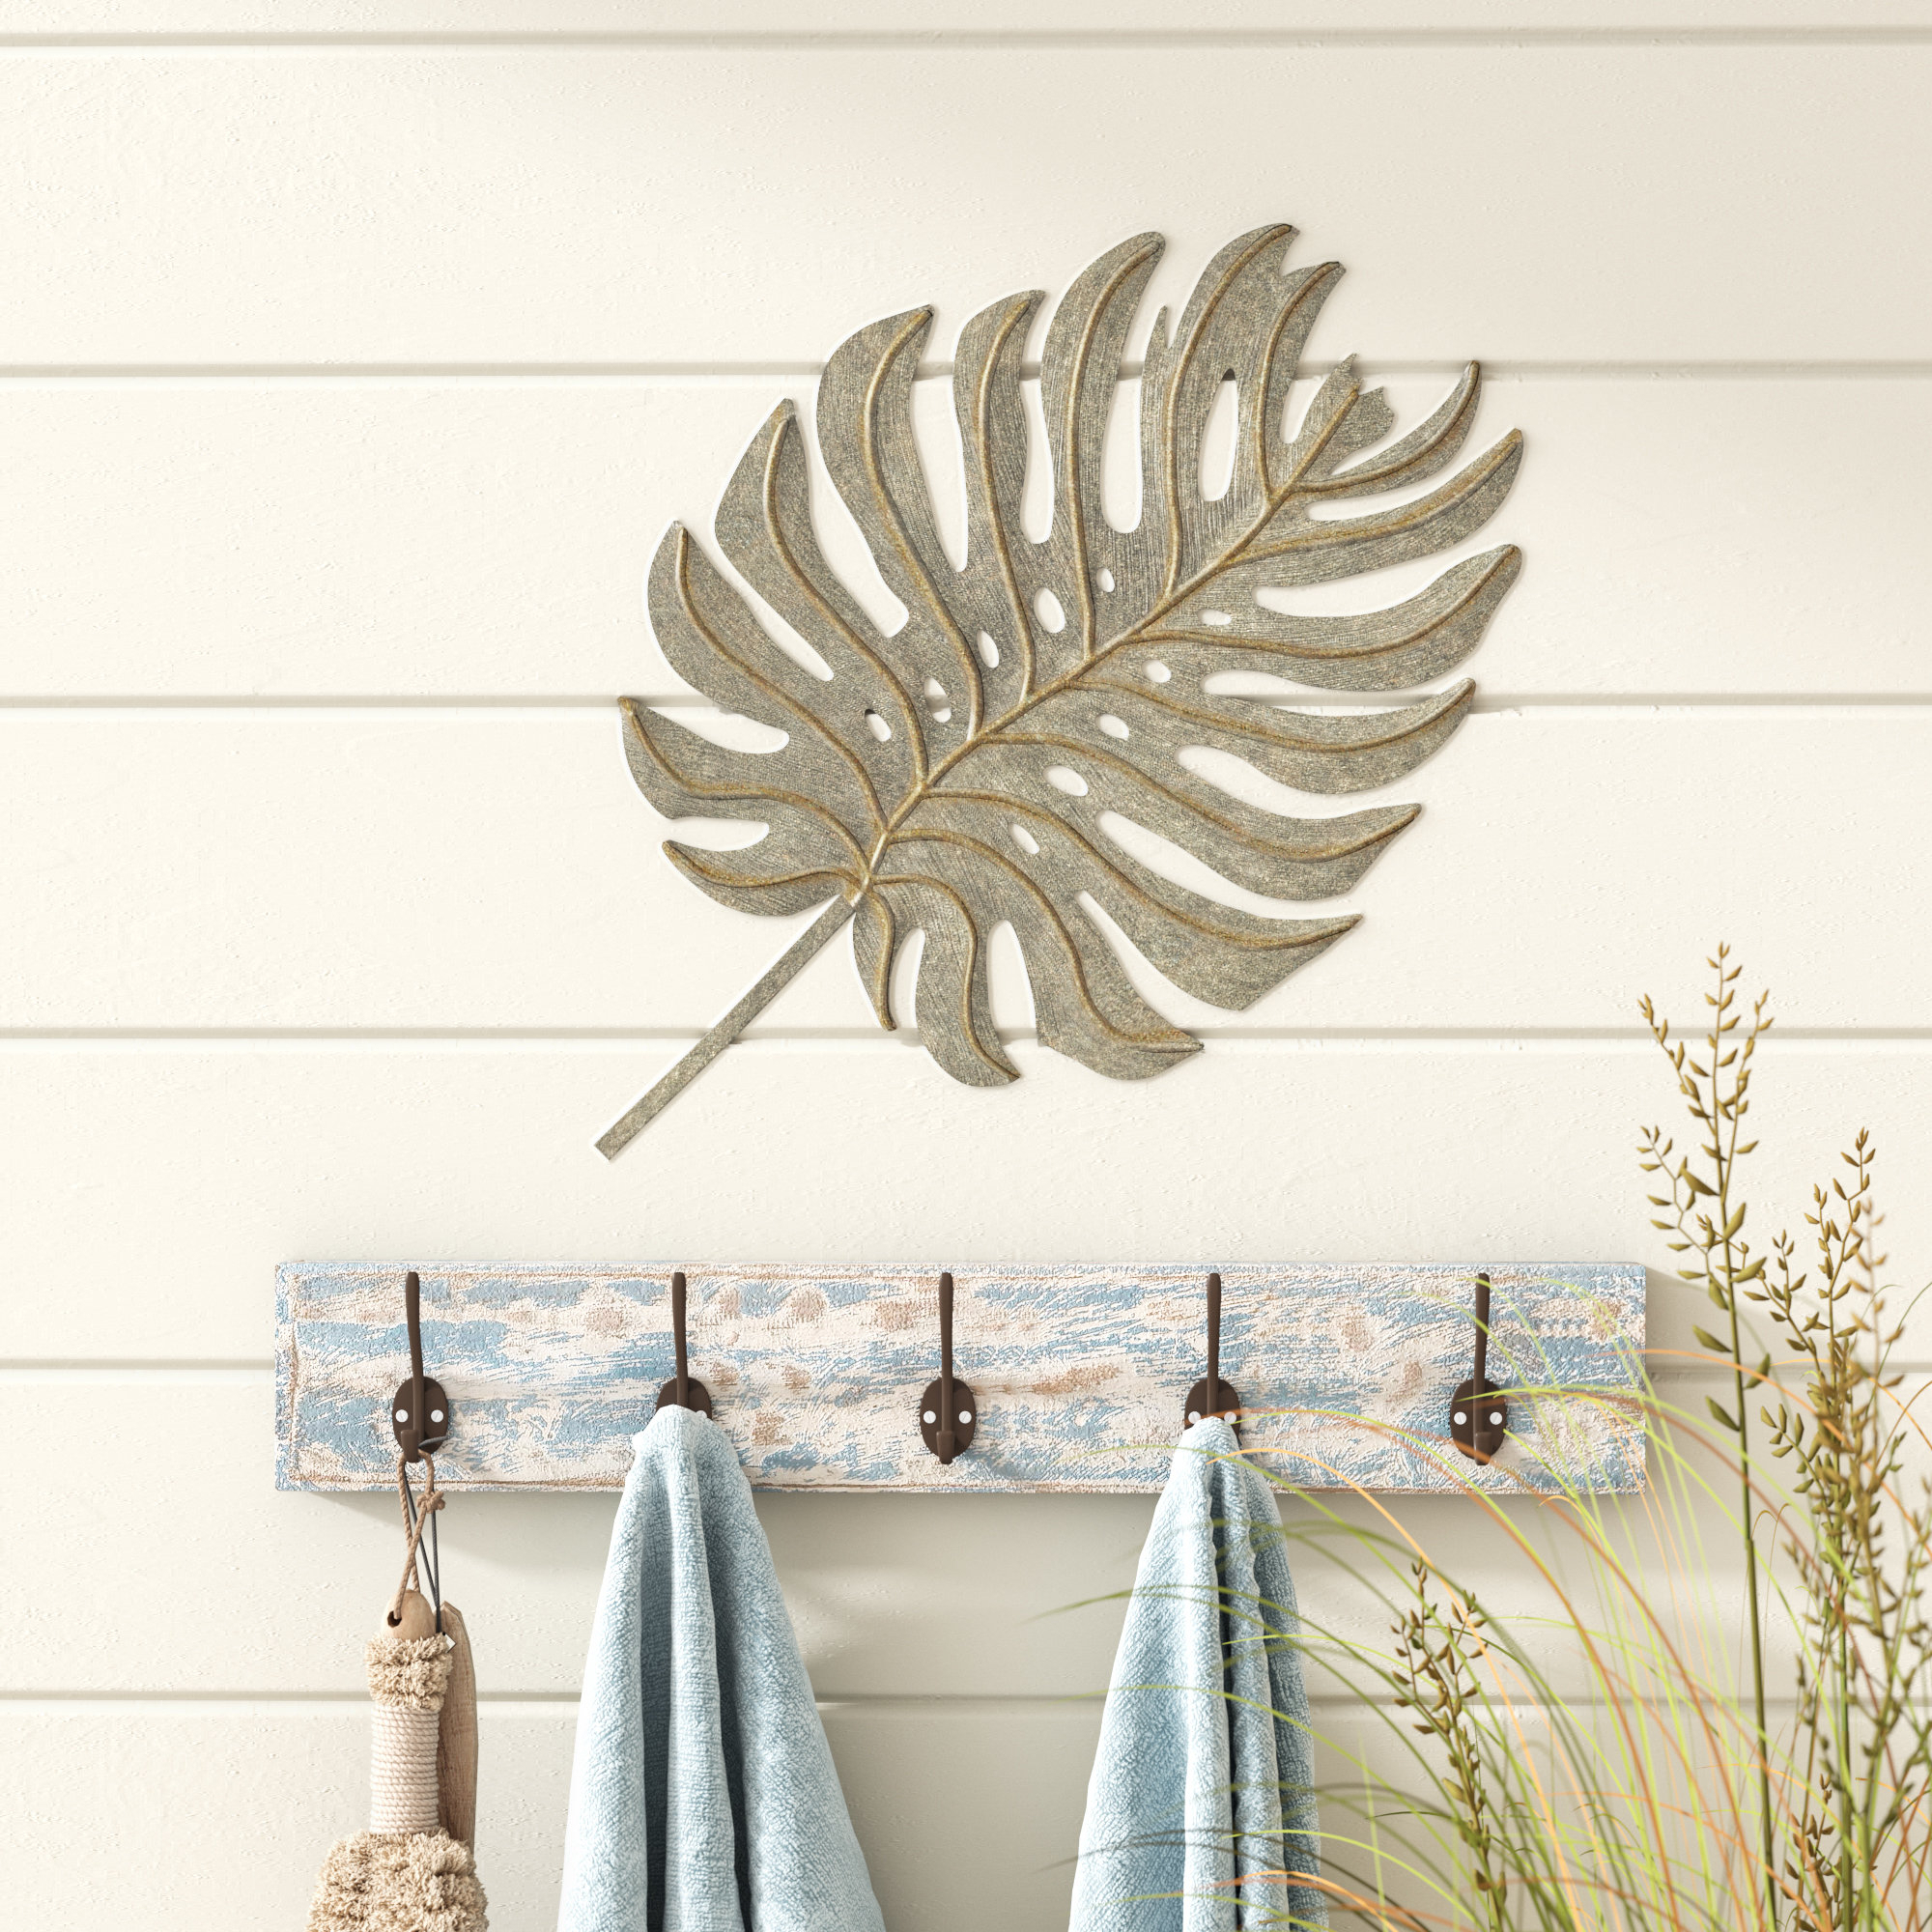 Palm Leaf Green/brass Metal Wall Décor regarding Metal Wall Decor By Cosmoliving (Image 28 of 30)